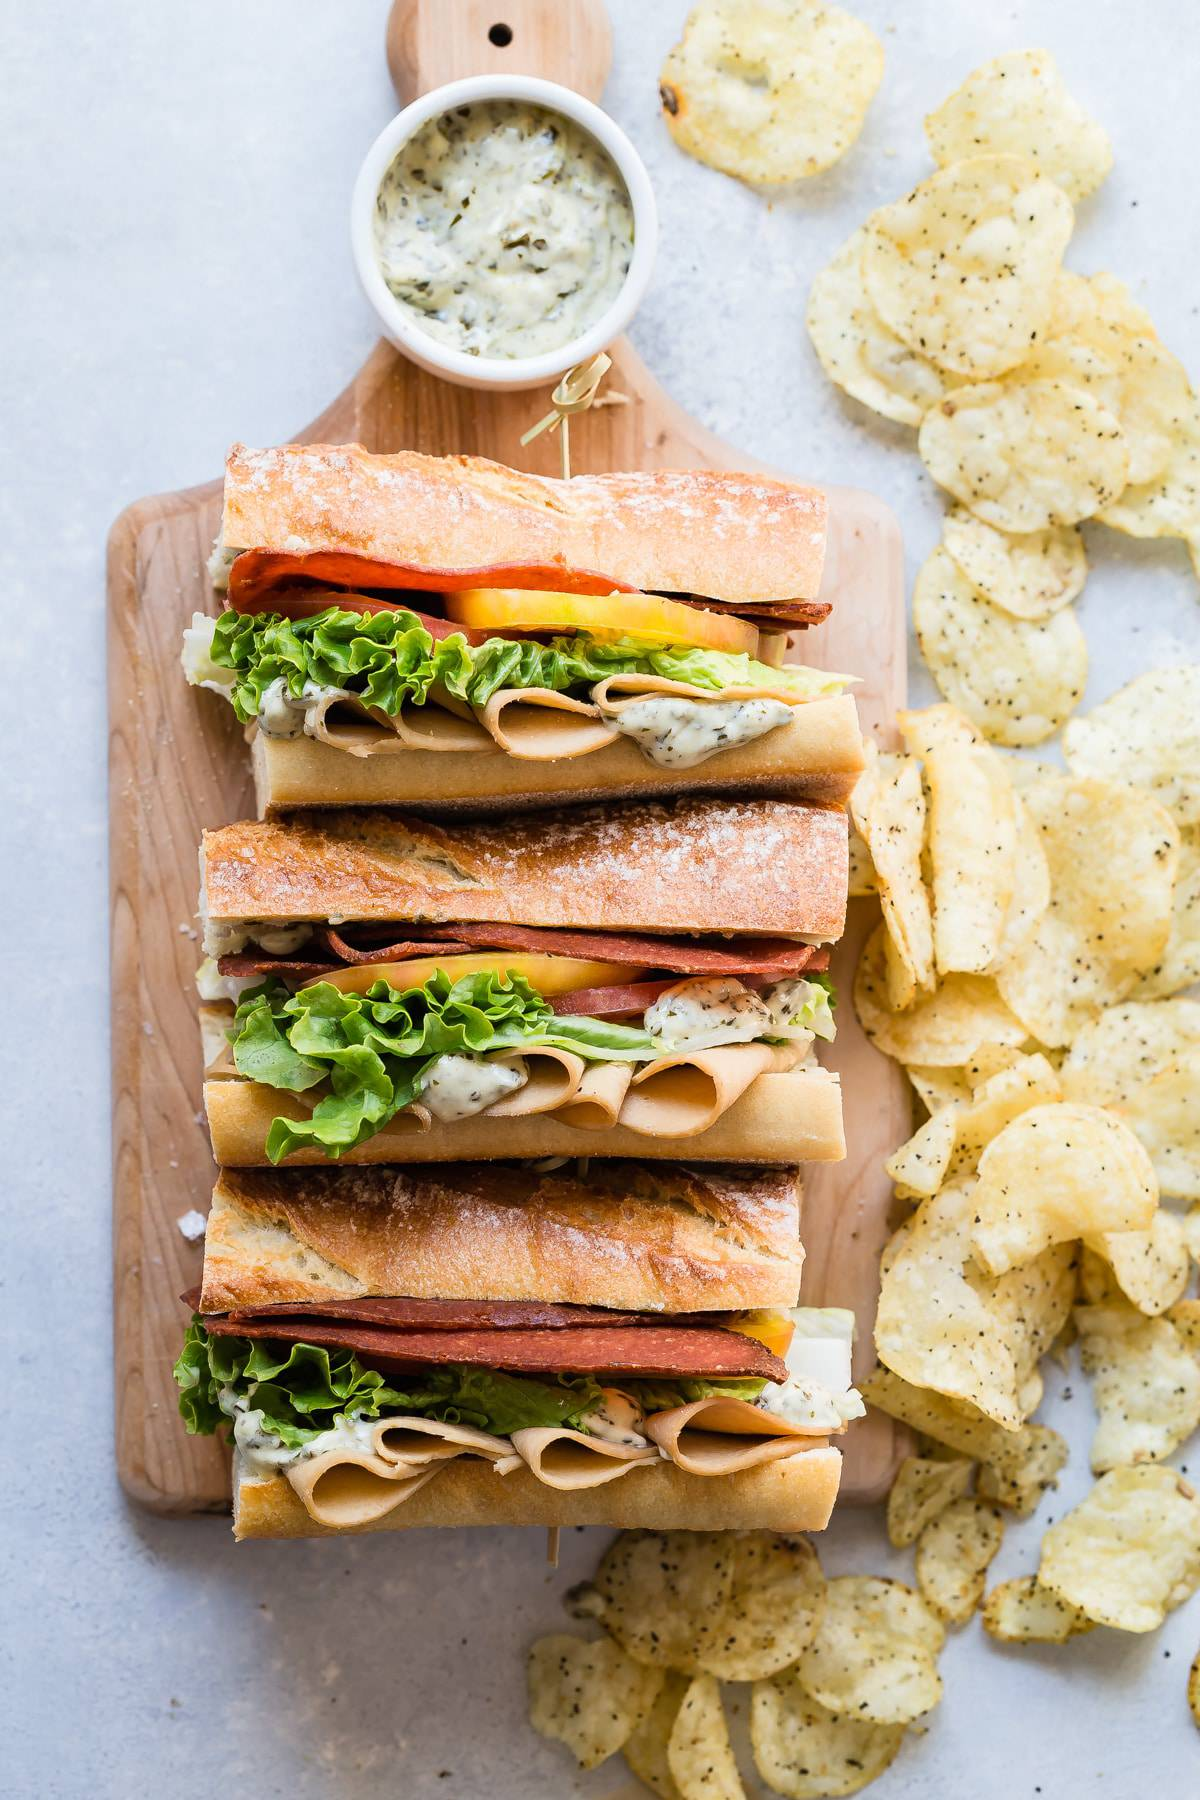 Vegetarian Club Sandwich with Pesto Spread